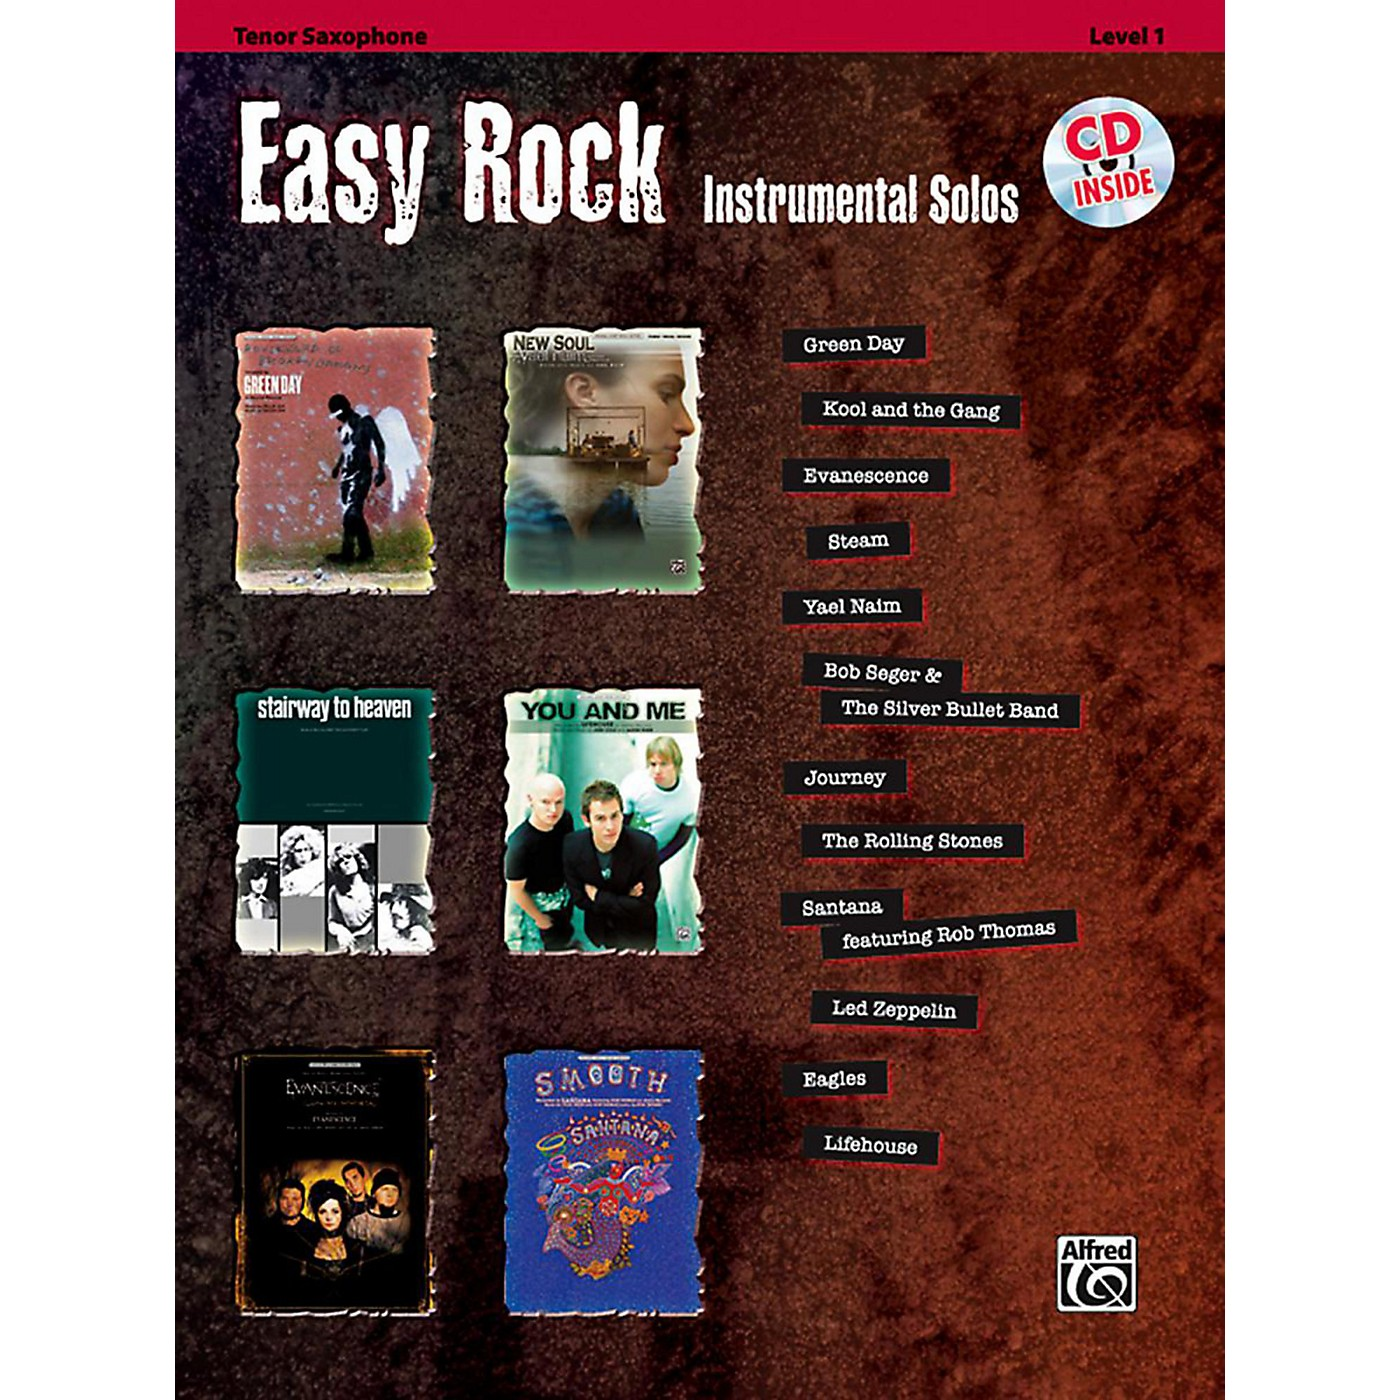 Alfred Easy Rock Instrumental Solos Level 1 Tenor Sax Book & CD thumbnail